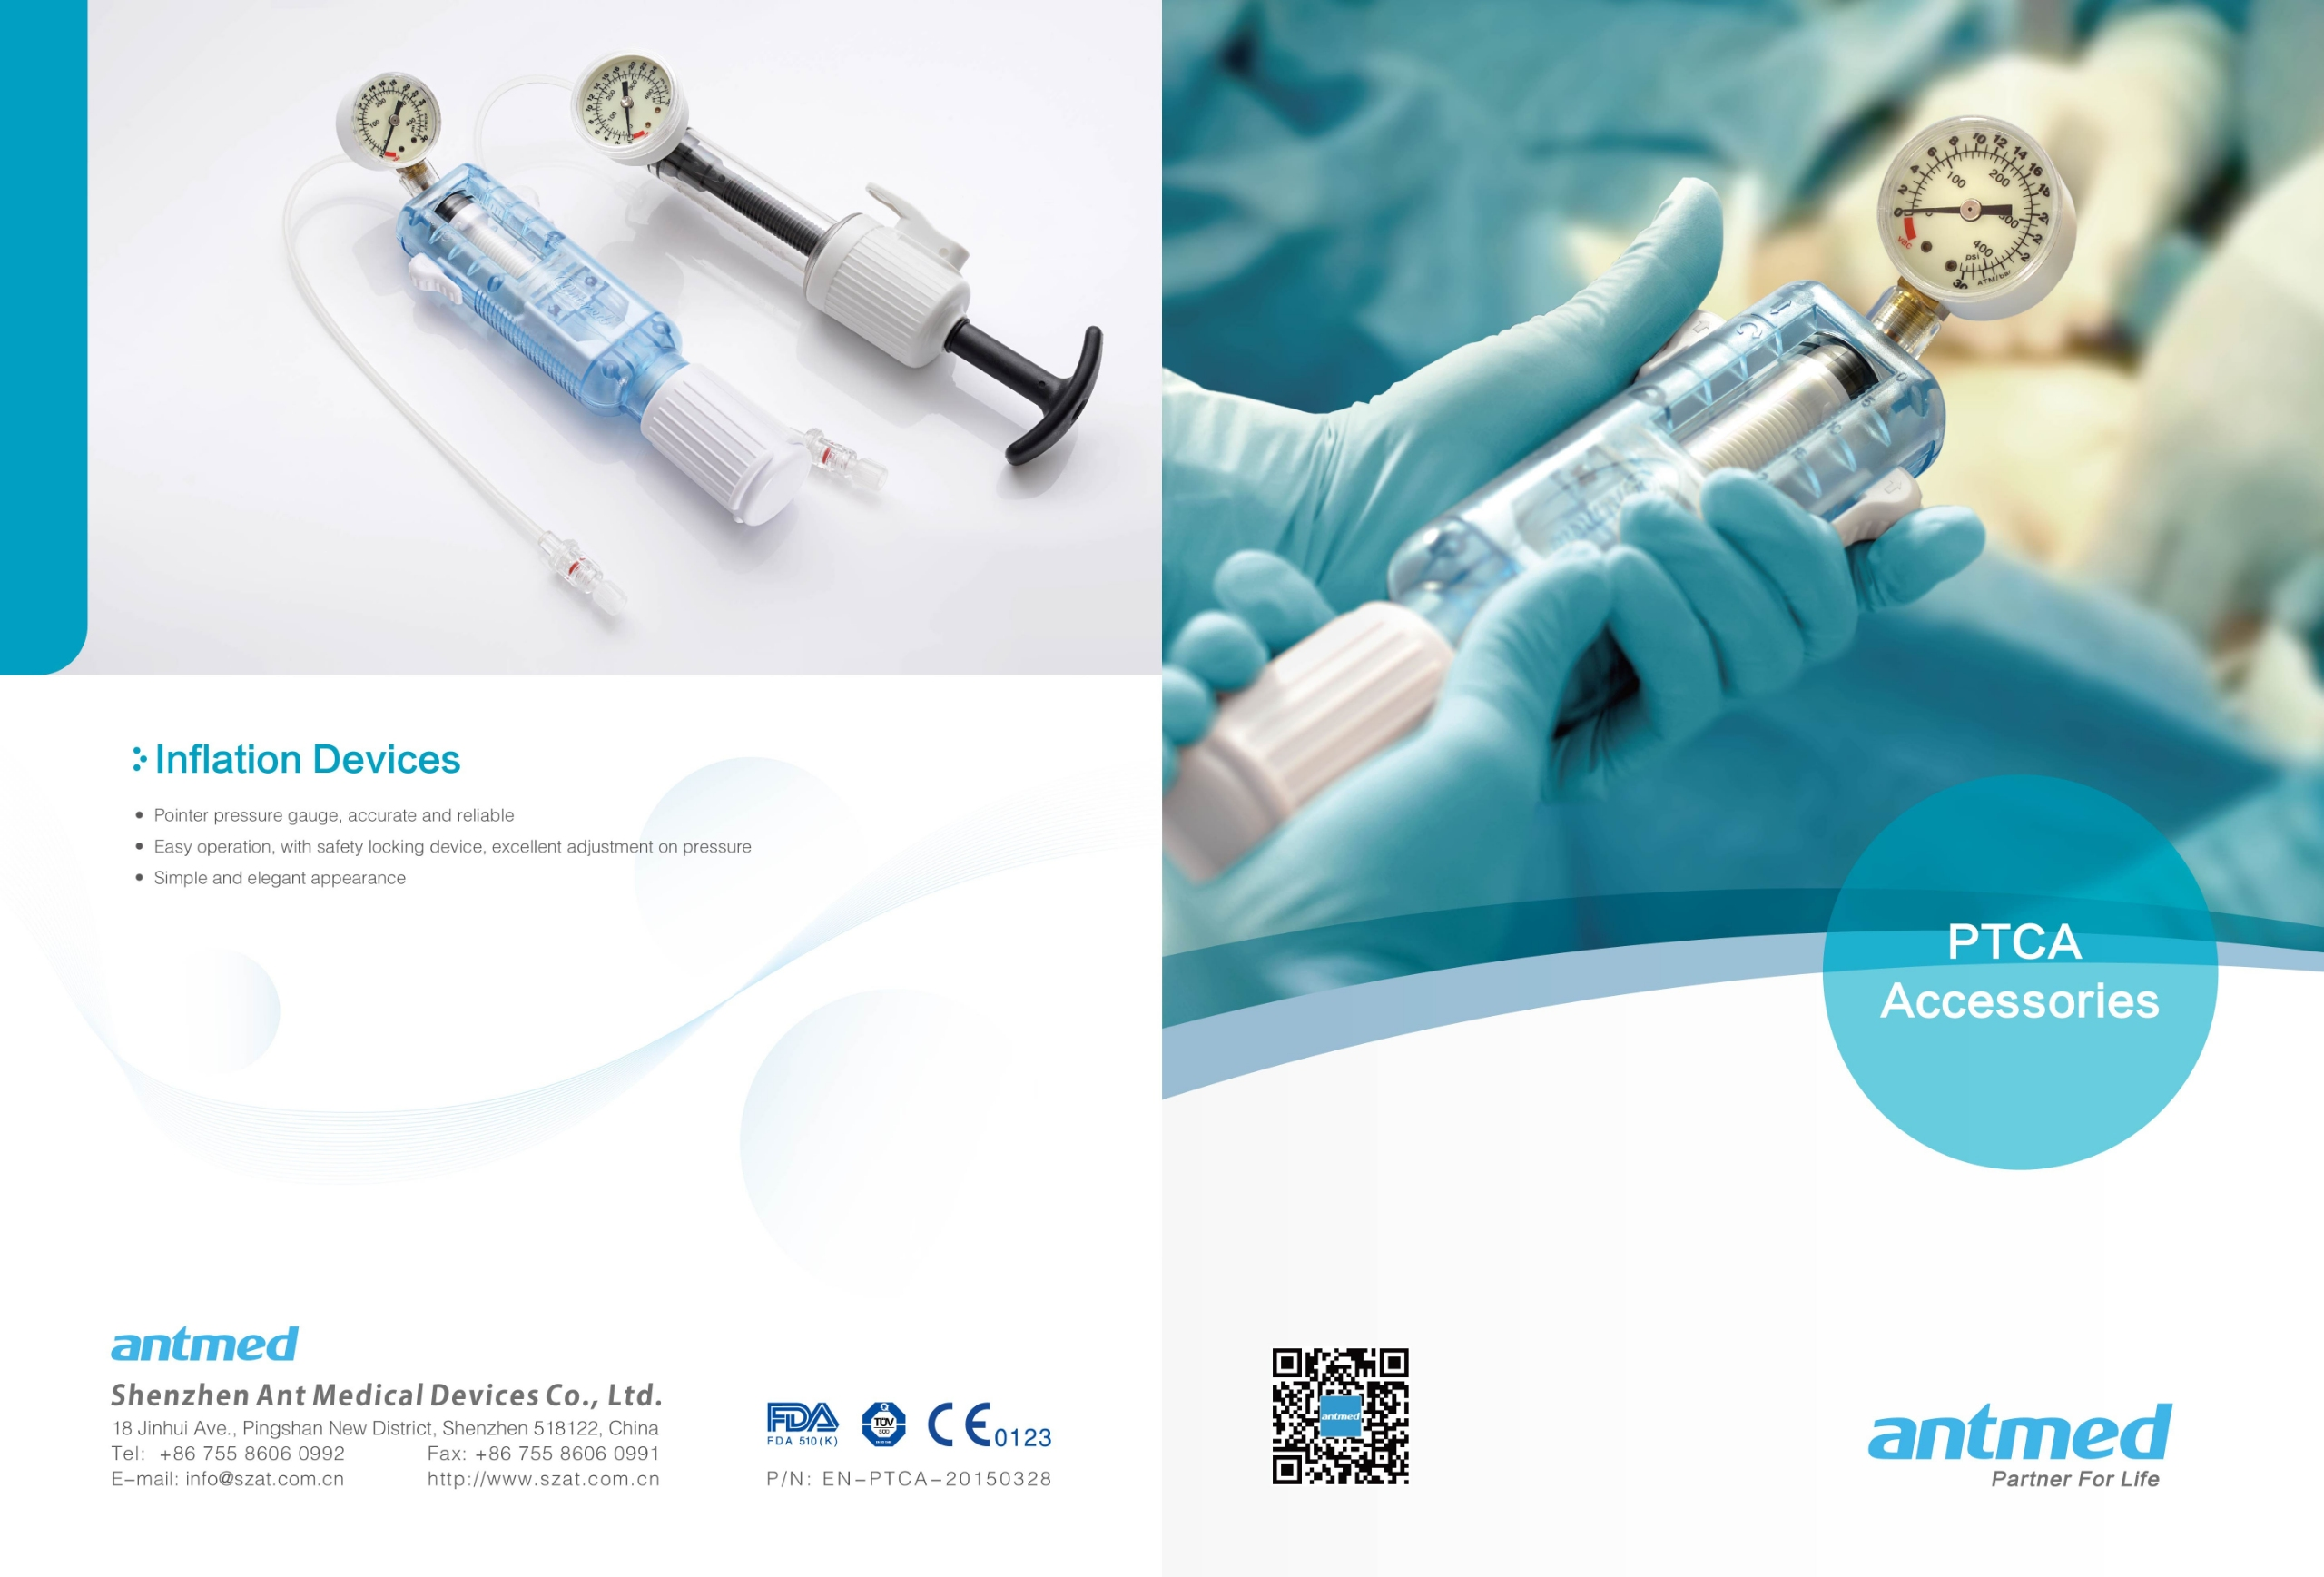 Interventional Cardiology Products - Shenzhen Ant Medical